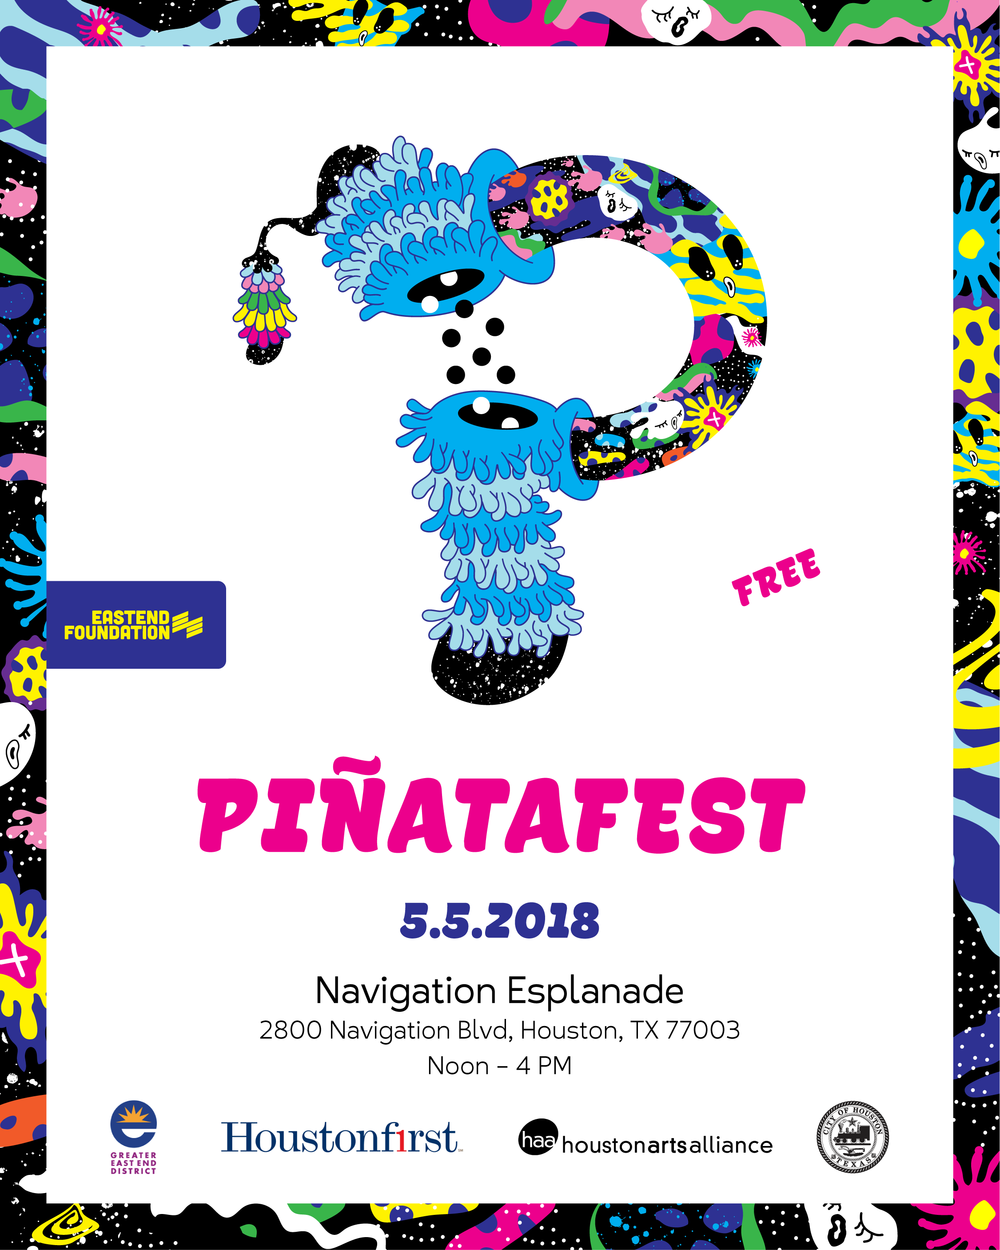 Pinatafest_2018_East_End_Foundation_Houston_011.png